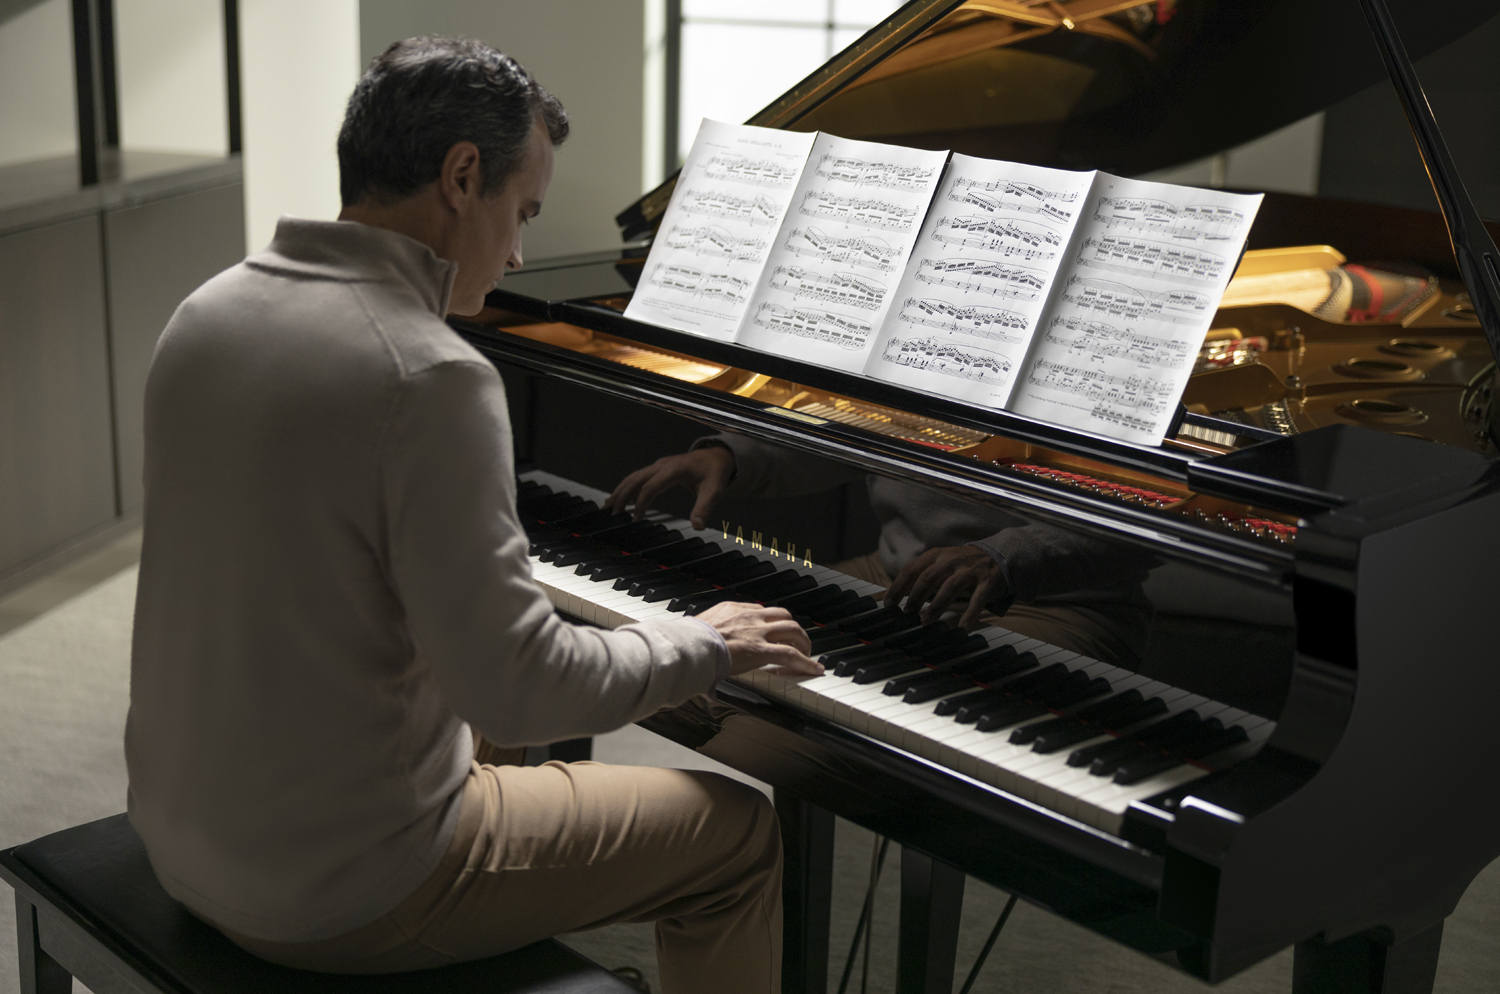 An older man in a suit playing a grand piano.